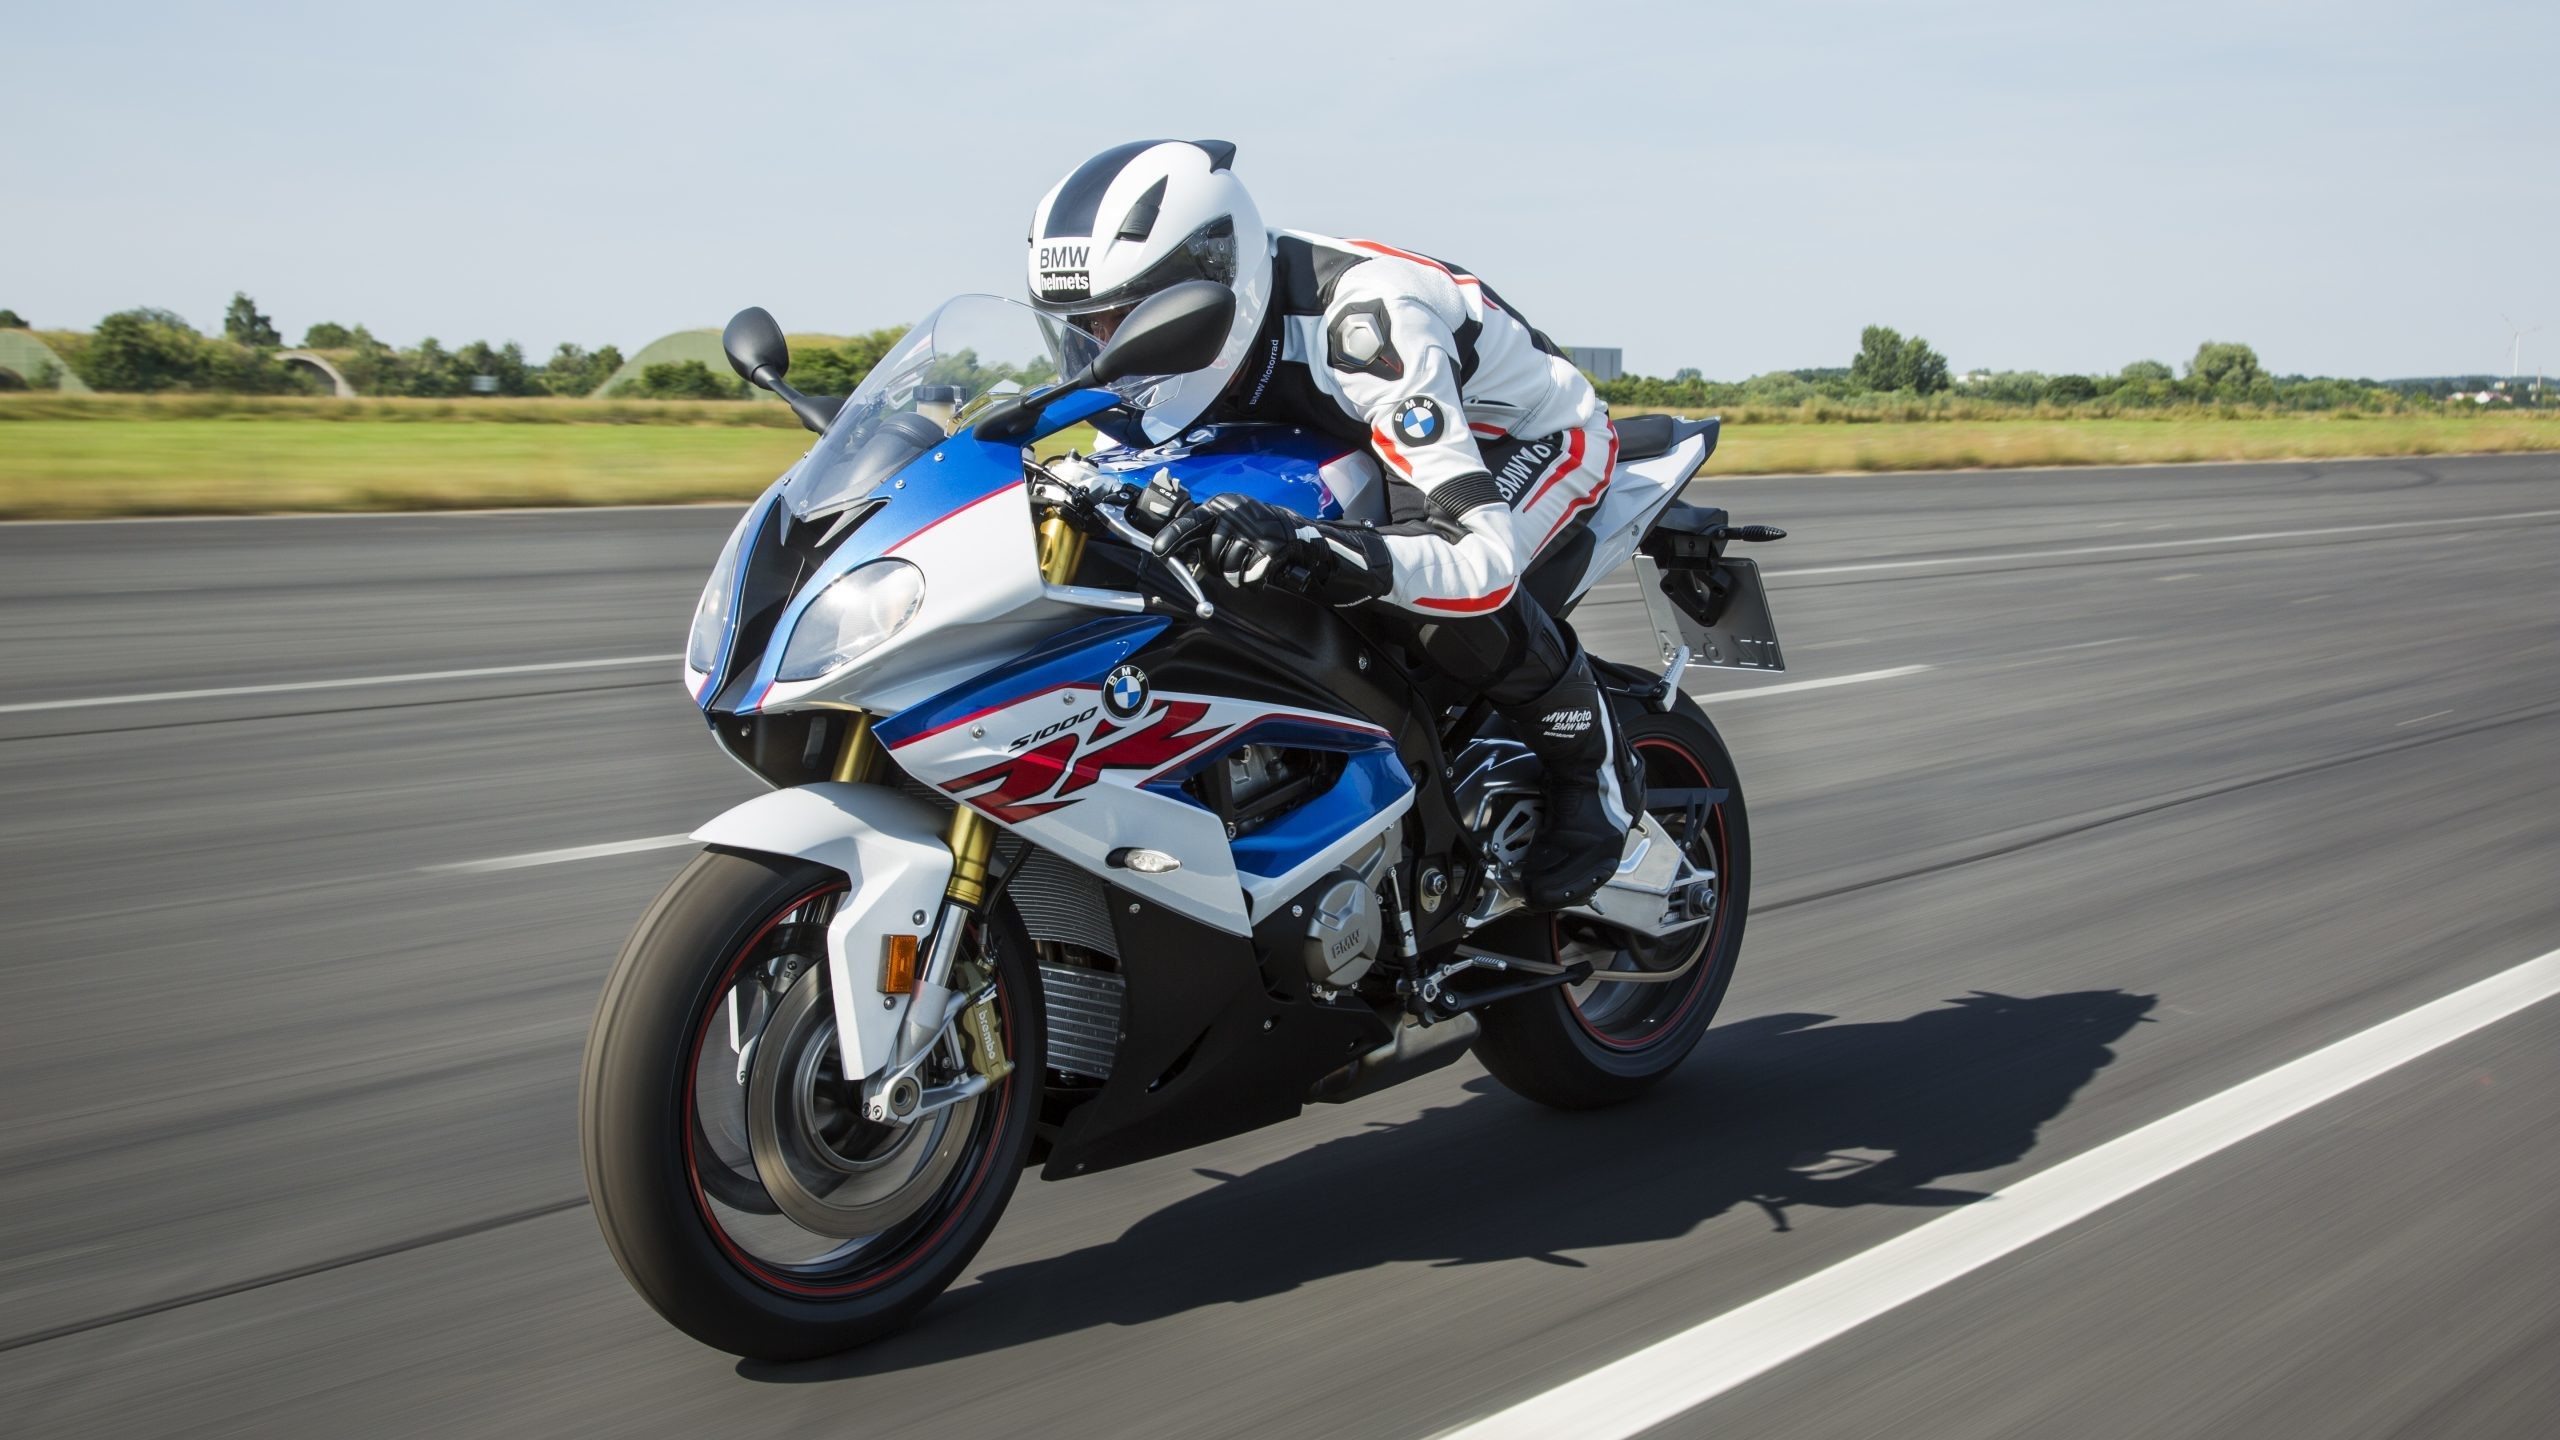 2560x1440 BMW S1000RR Wallpapers